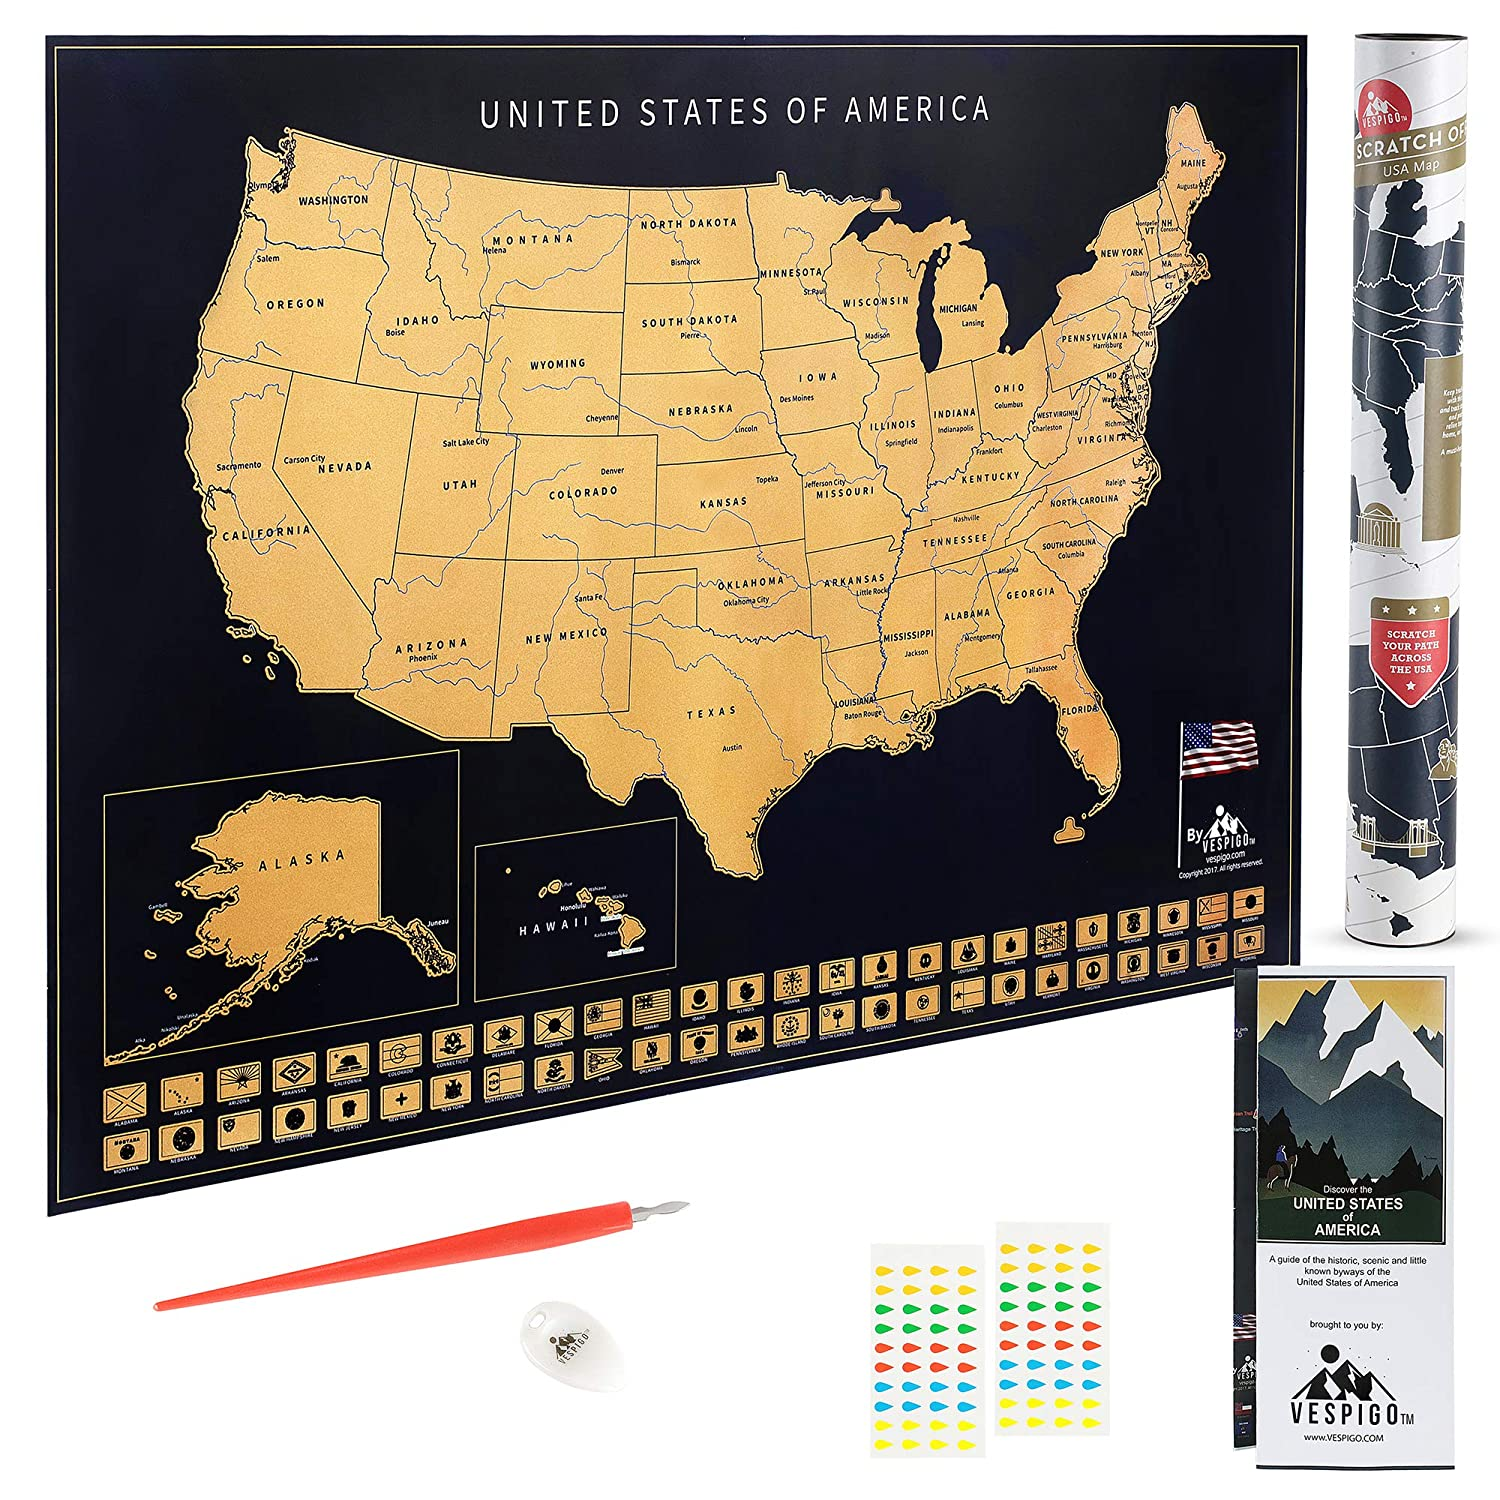 State Flags USA Scratch Off Map by Vespigo National Parks Scenic Trails 24x17 Bonus Accessories Pack with Unique Discover America brochure